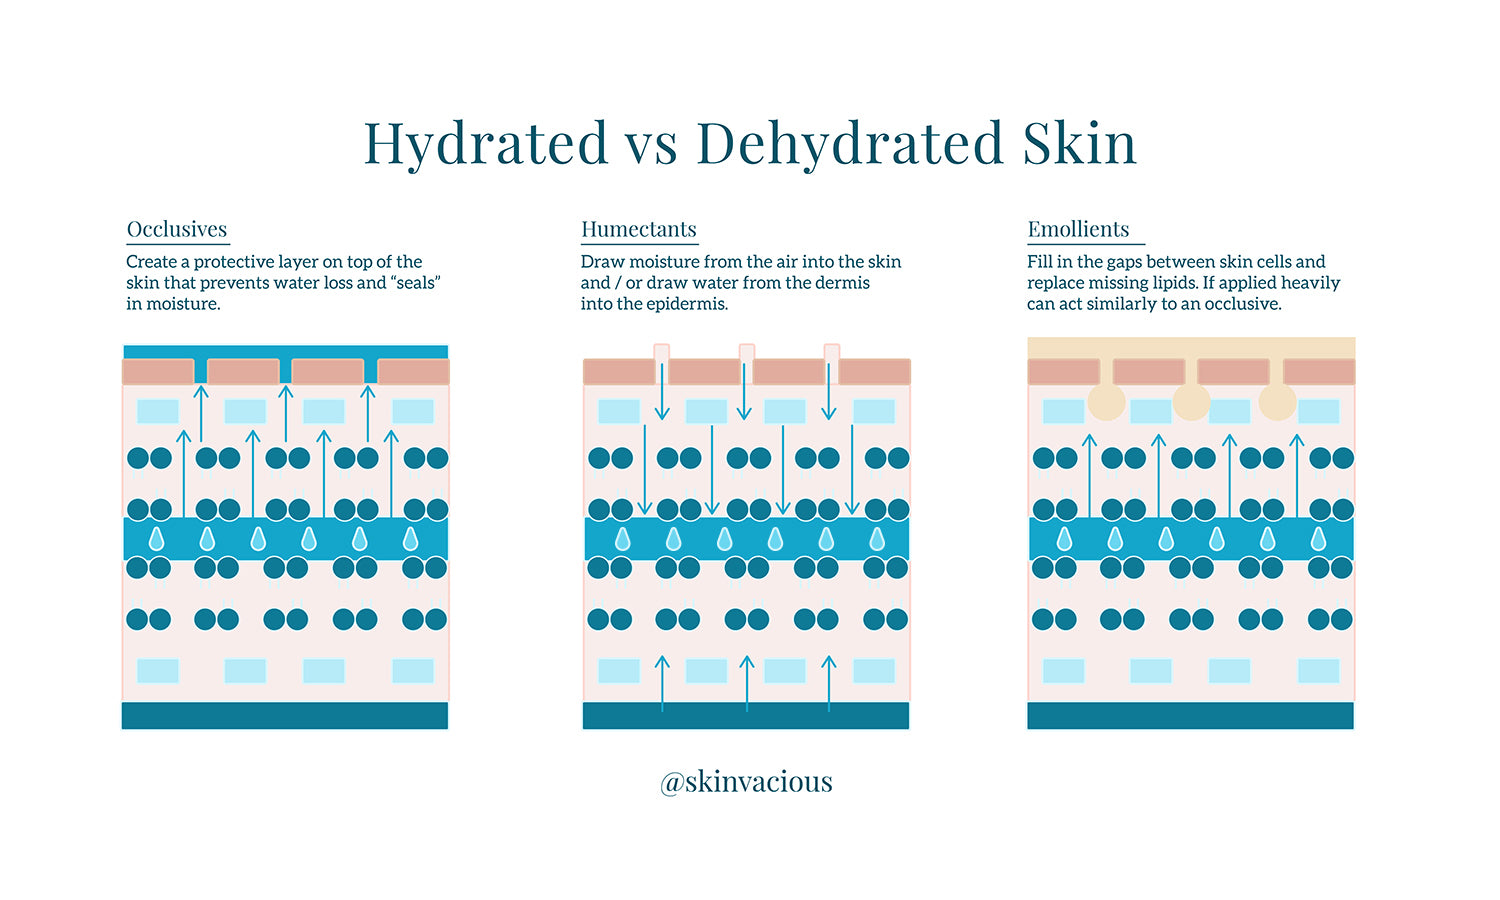 skinVacious - Hydrated vs Dehydrated Skin